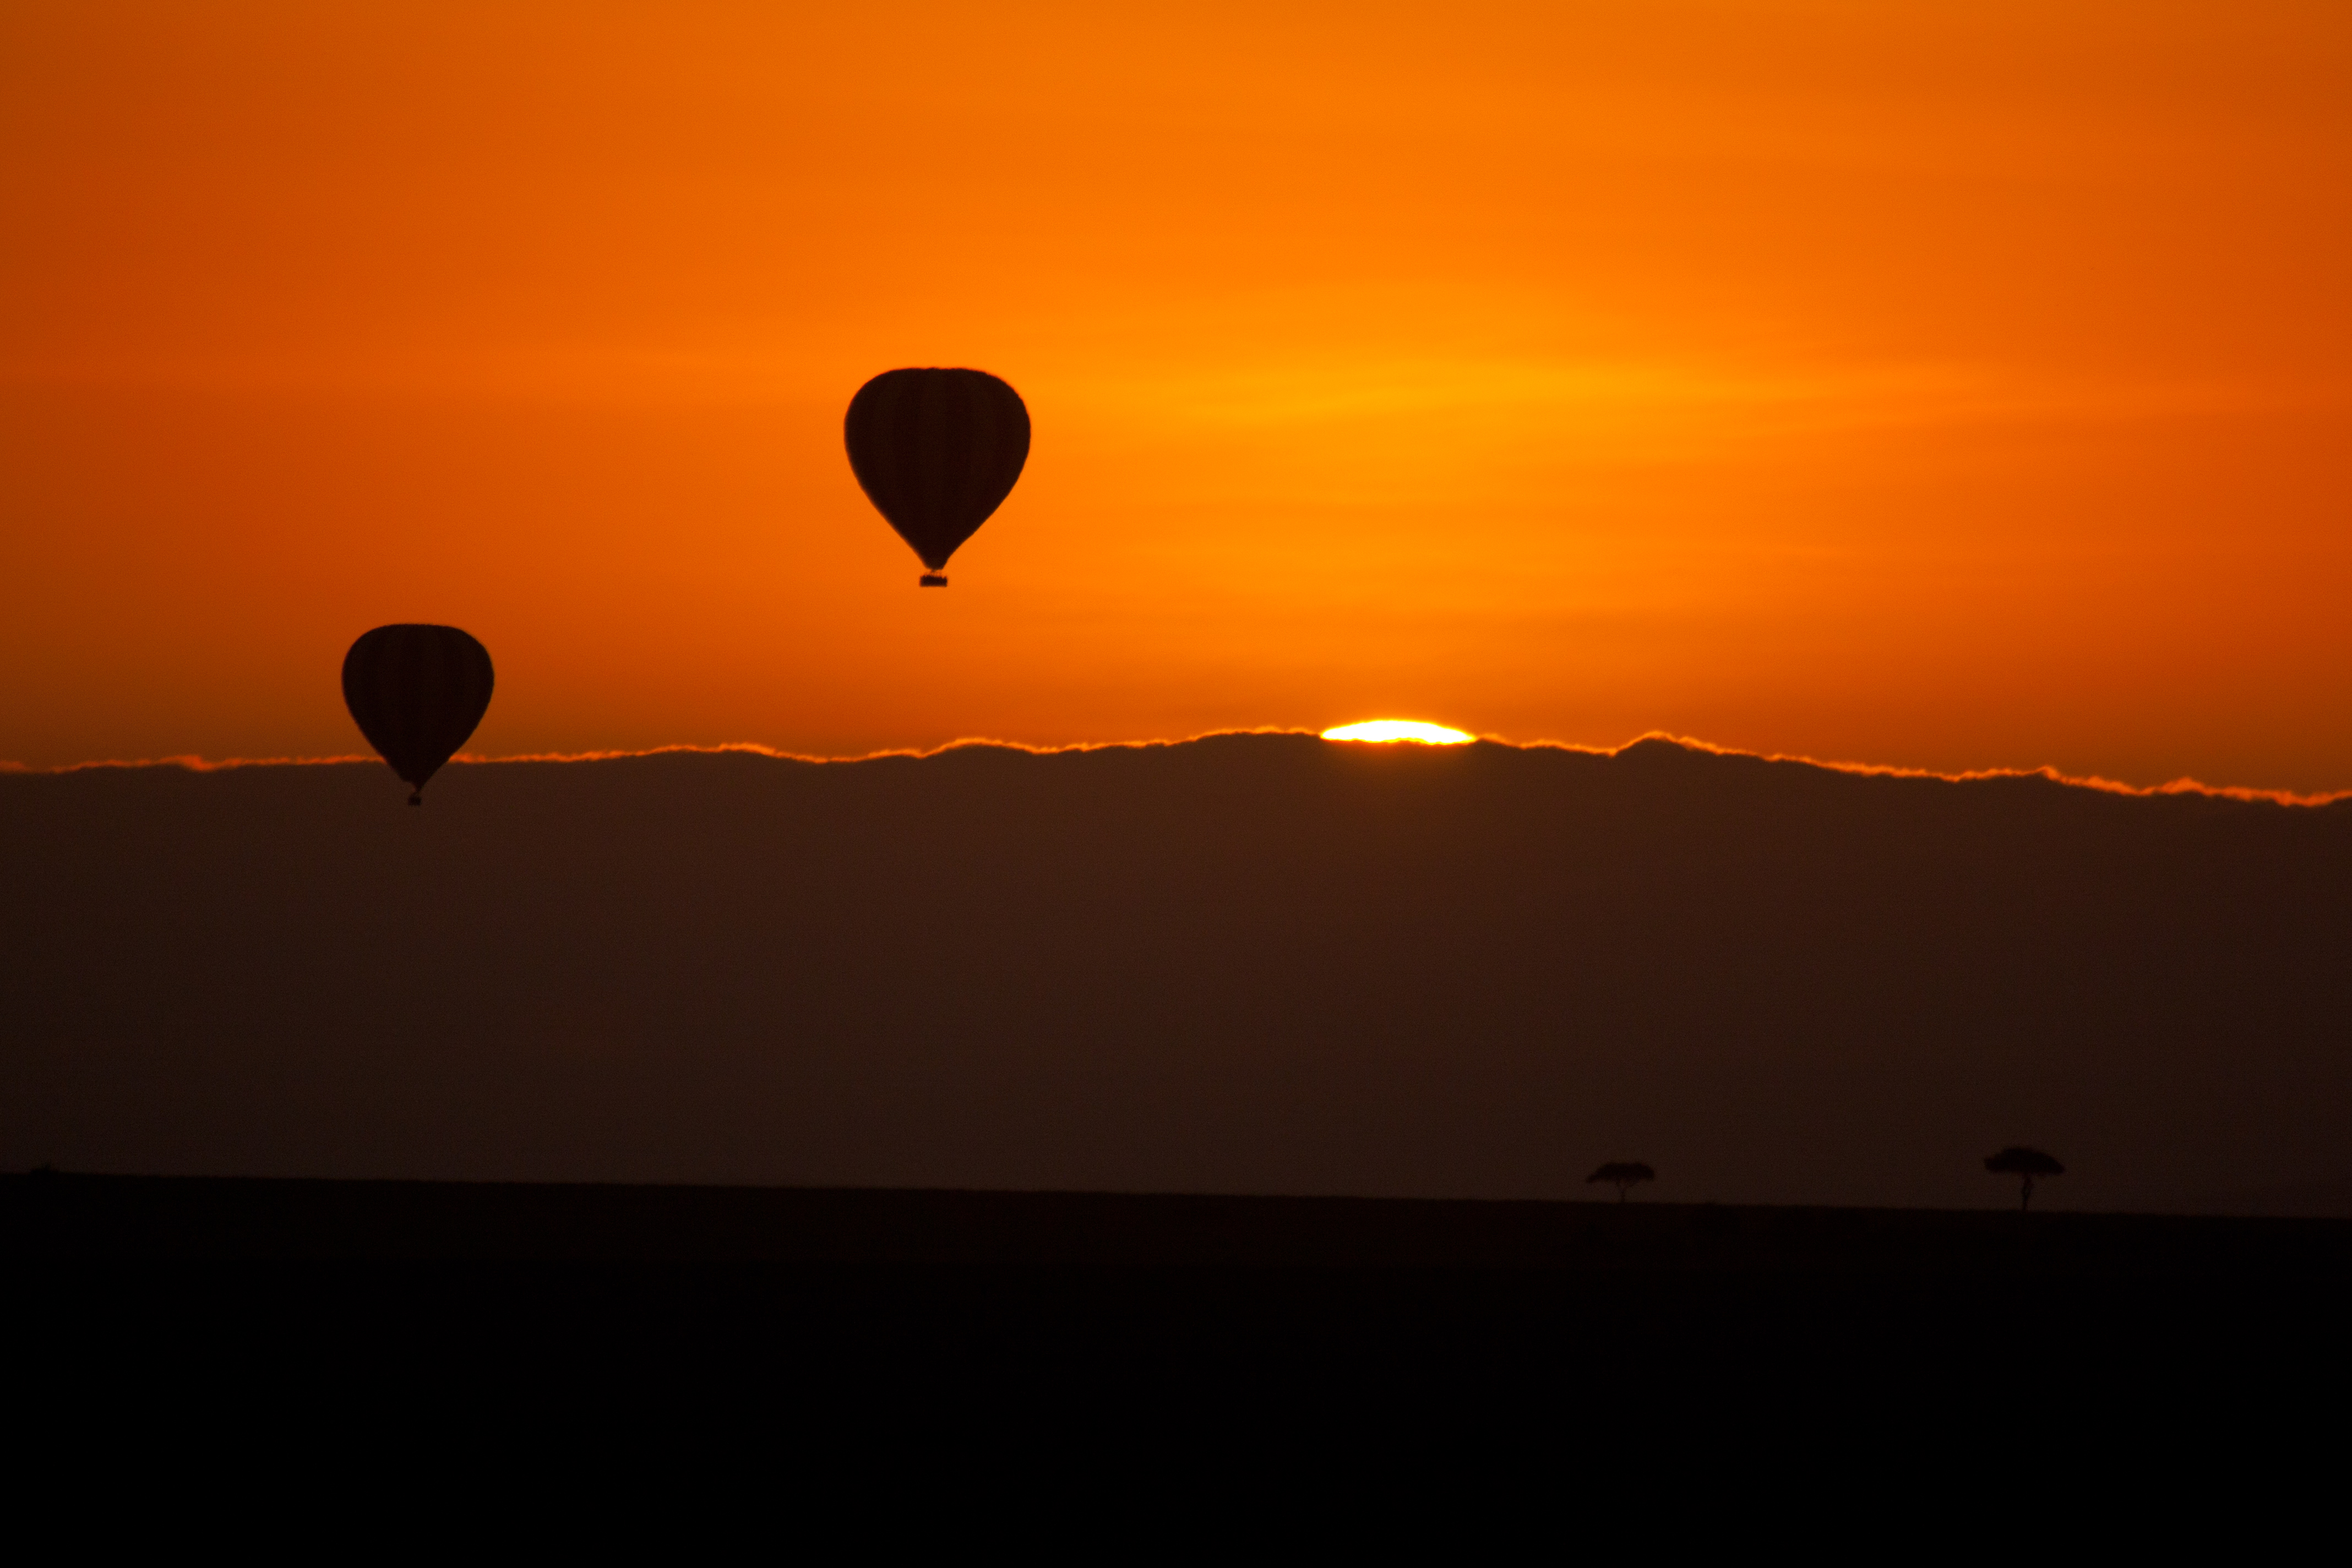 Balloons sunrise